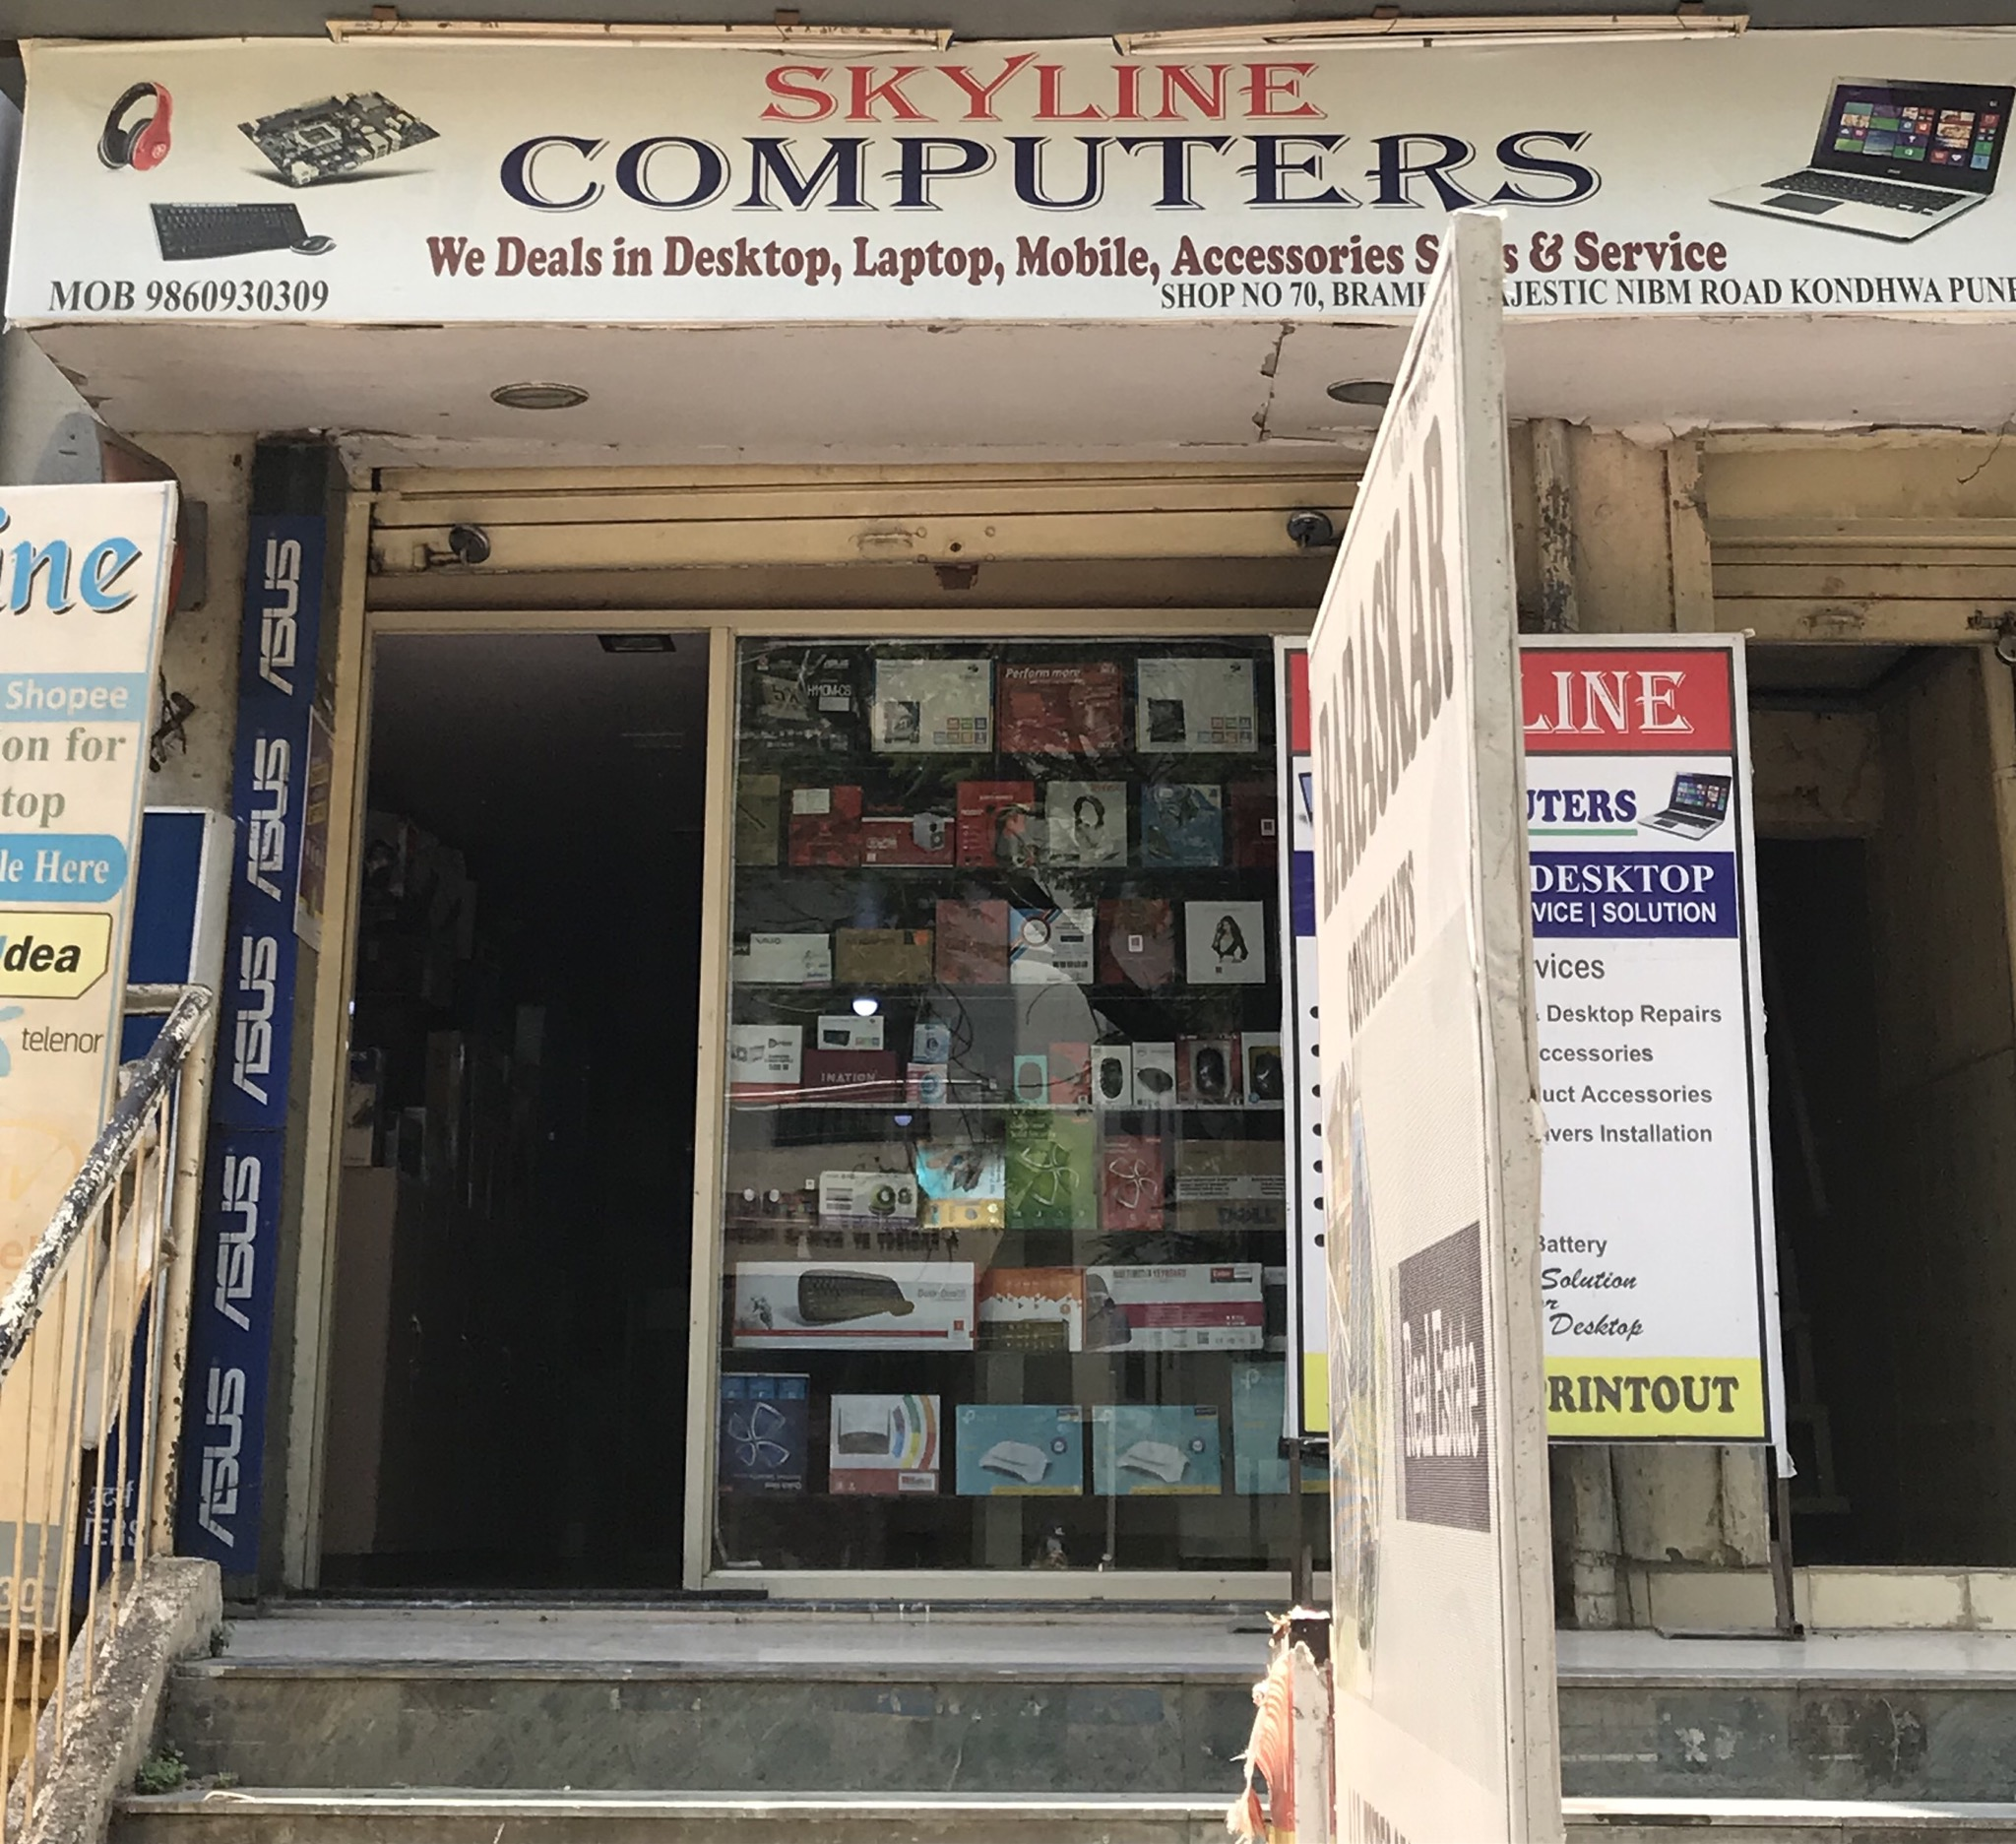 Skyline Computers Computer Sales And Service in NIBM Pune